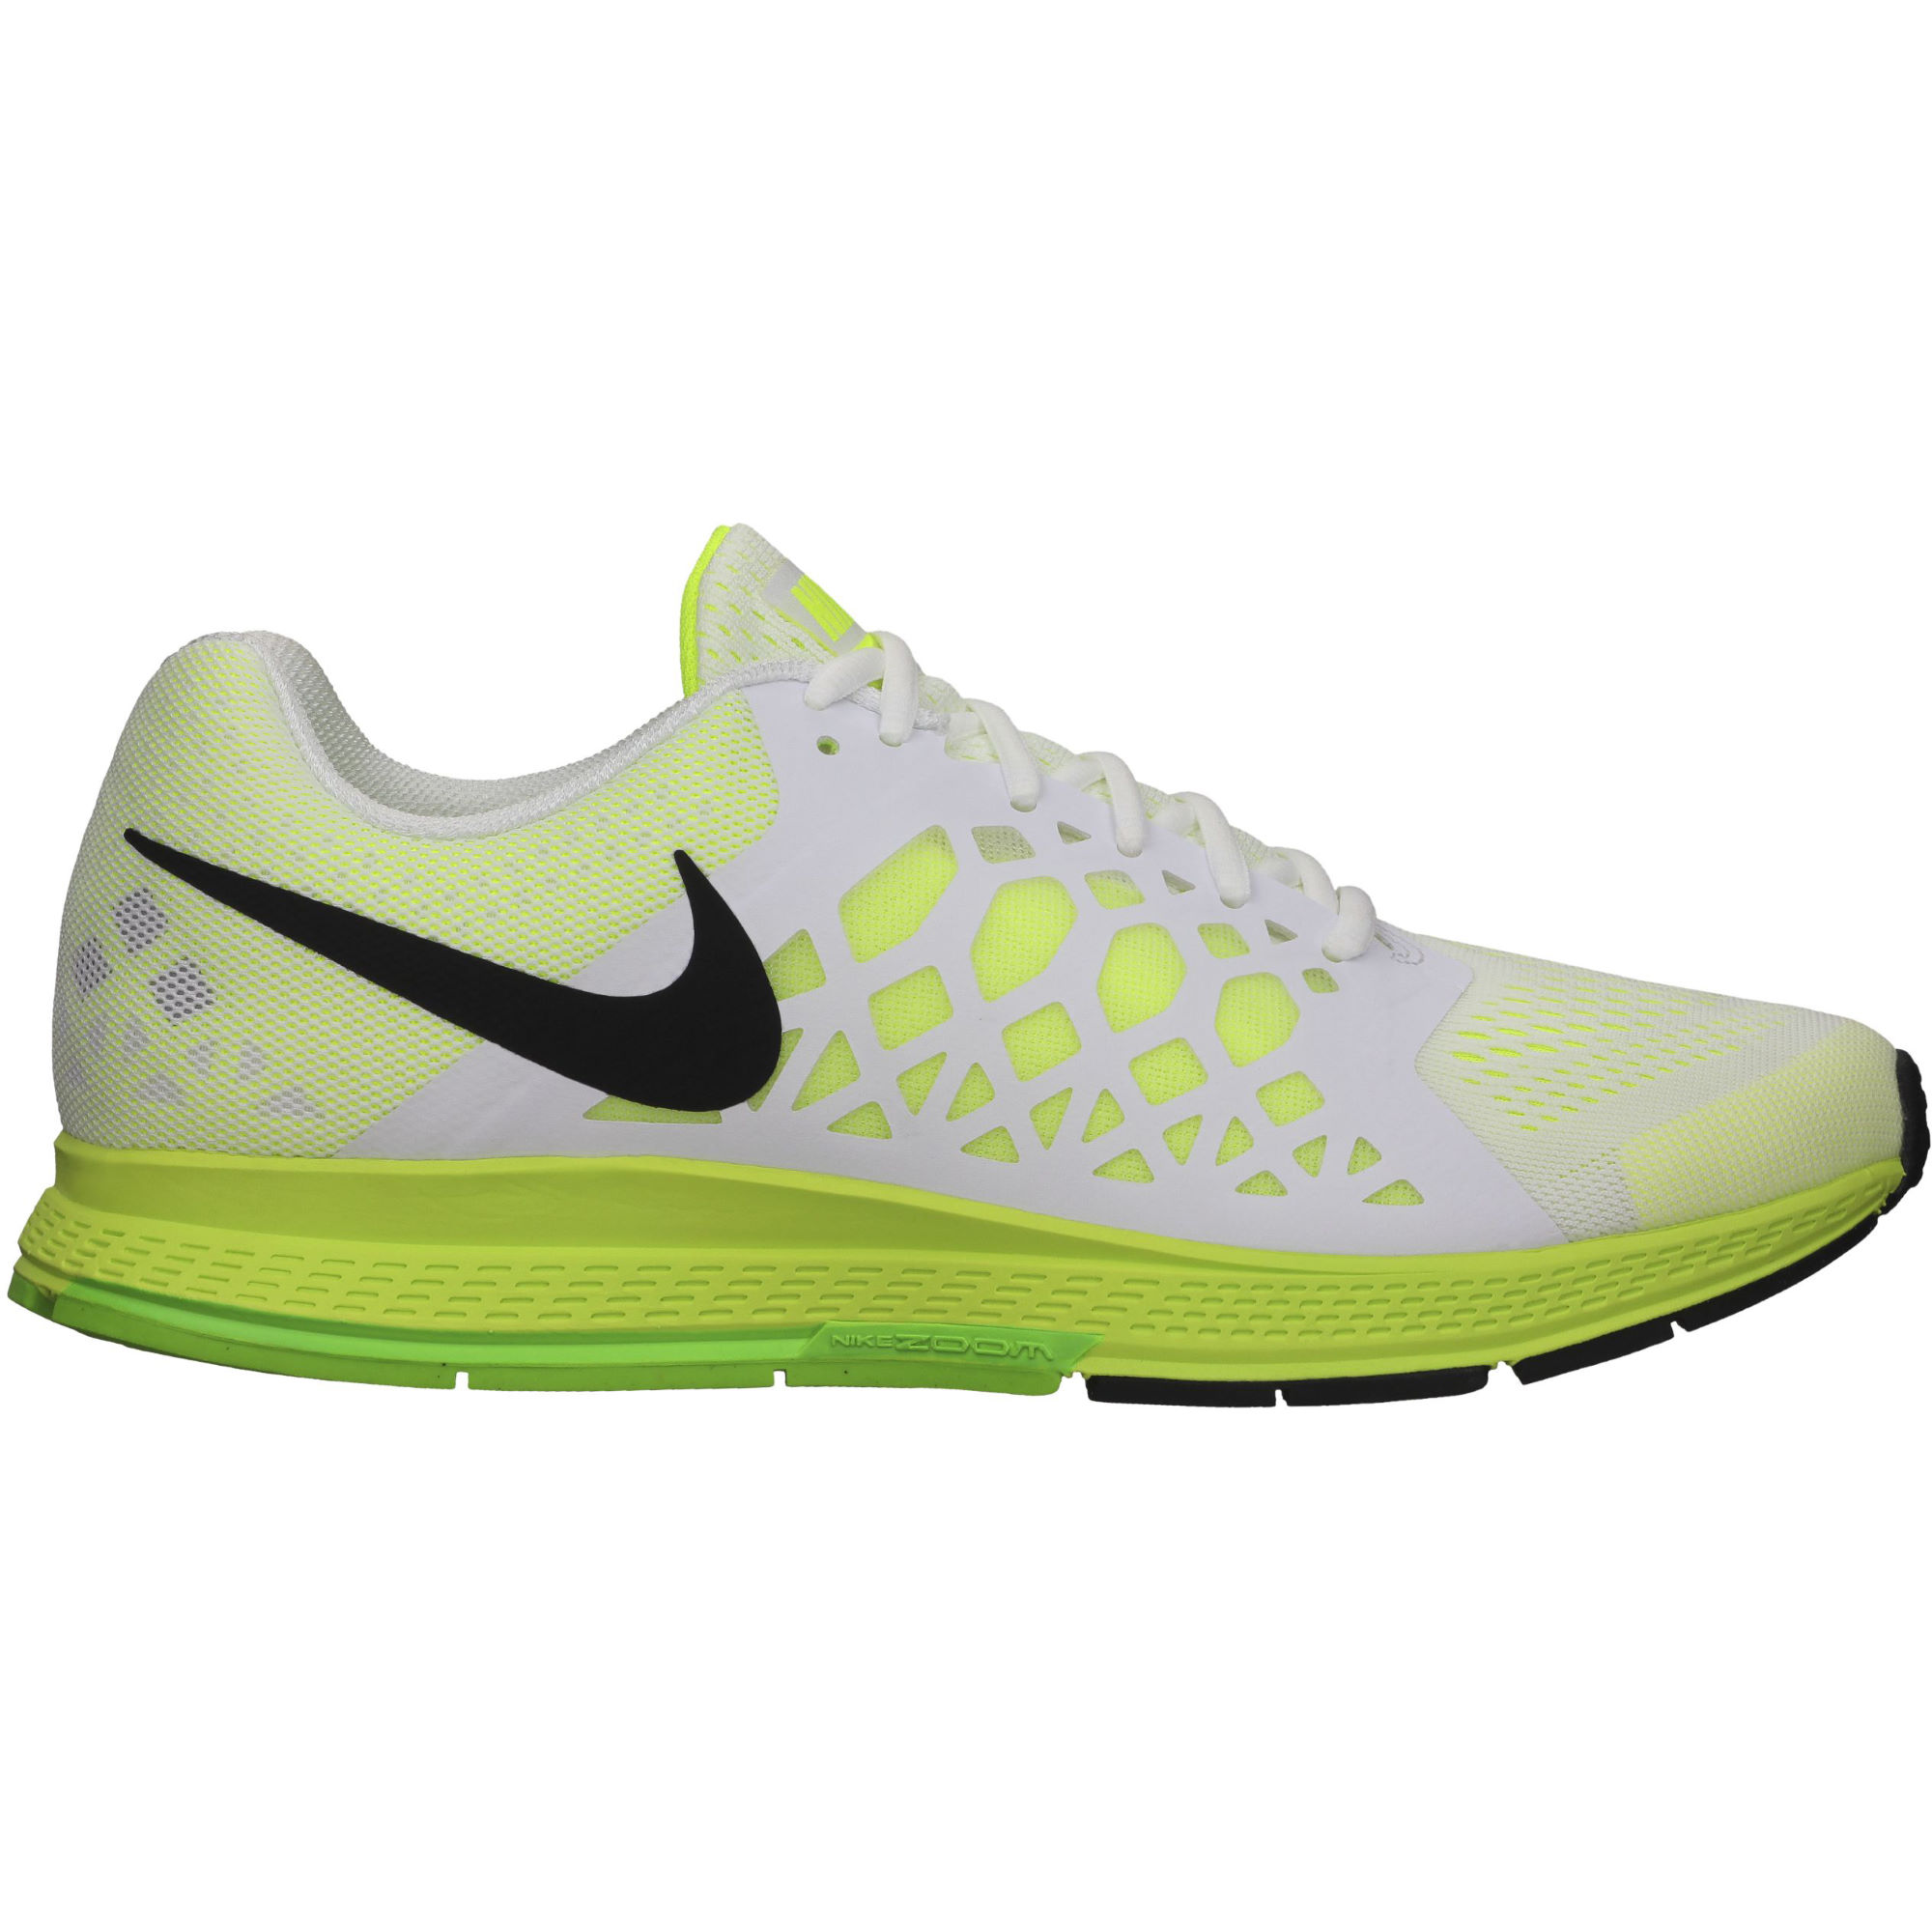 wiggle nike zoom pegasus 31 shoes fa14 cushion. Black Bedroom Furniture Sets. Home Design Ideas